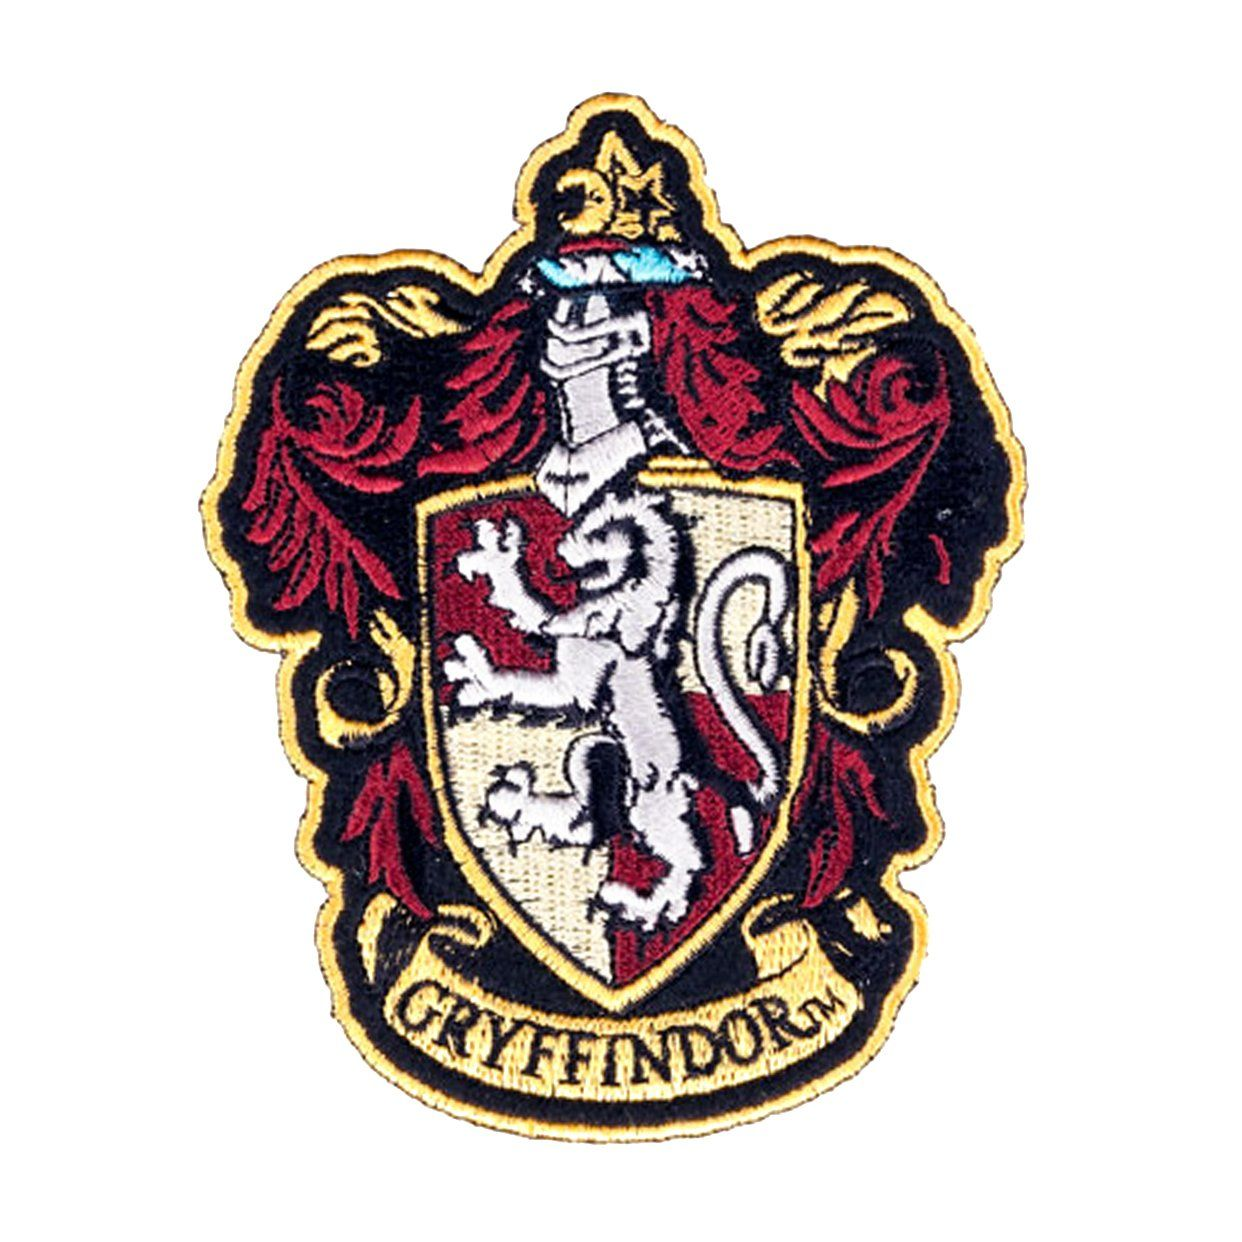 Which Hogwarts How Do You Belong To: Harry Potter House Of Gryffindor House Hogwarts Crest Robe